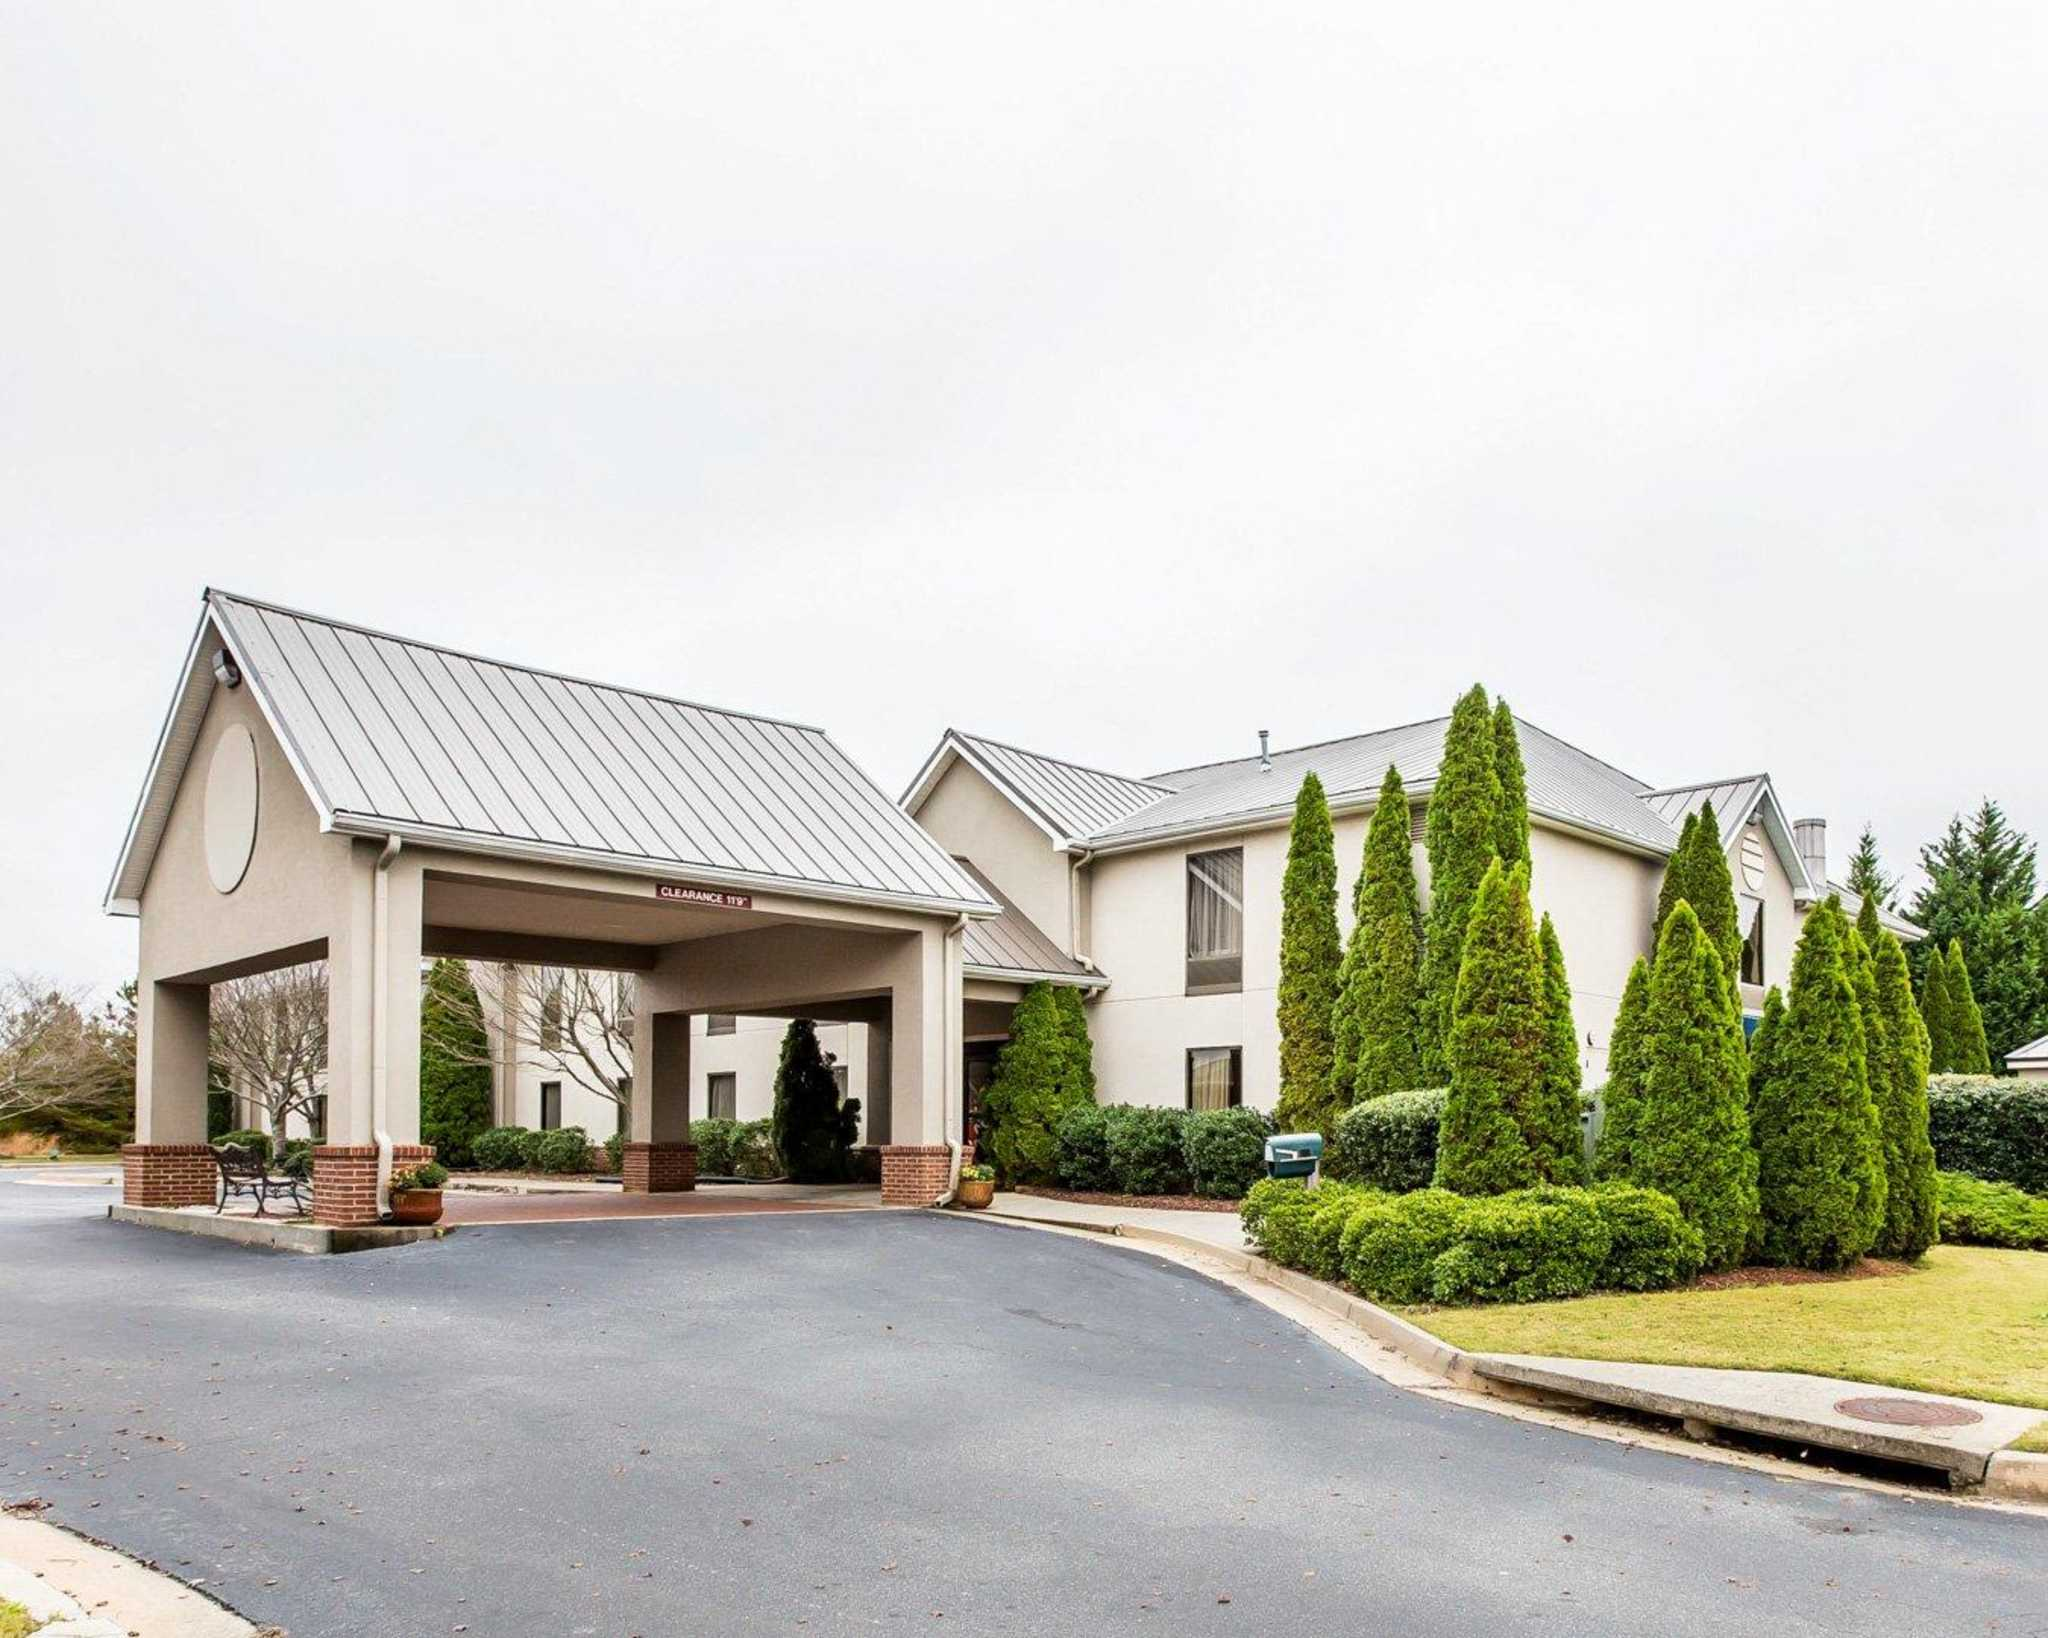 Quality Inn Amp Suites Coupons Near Me In Dawsonville 8coupons